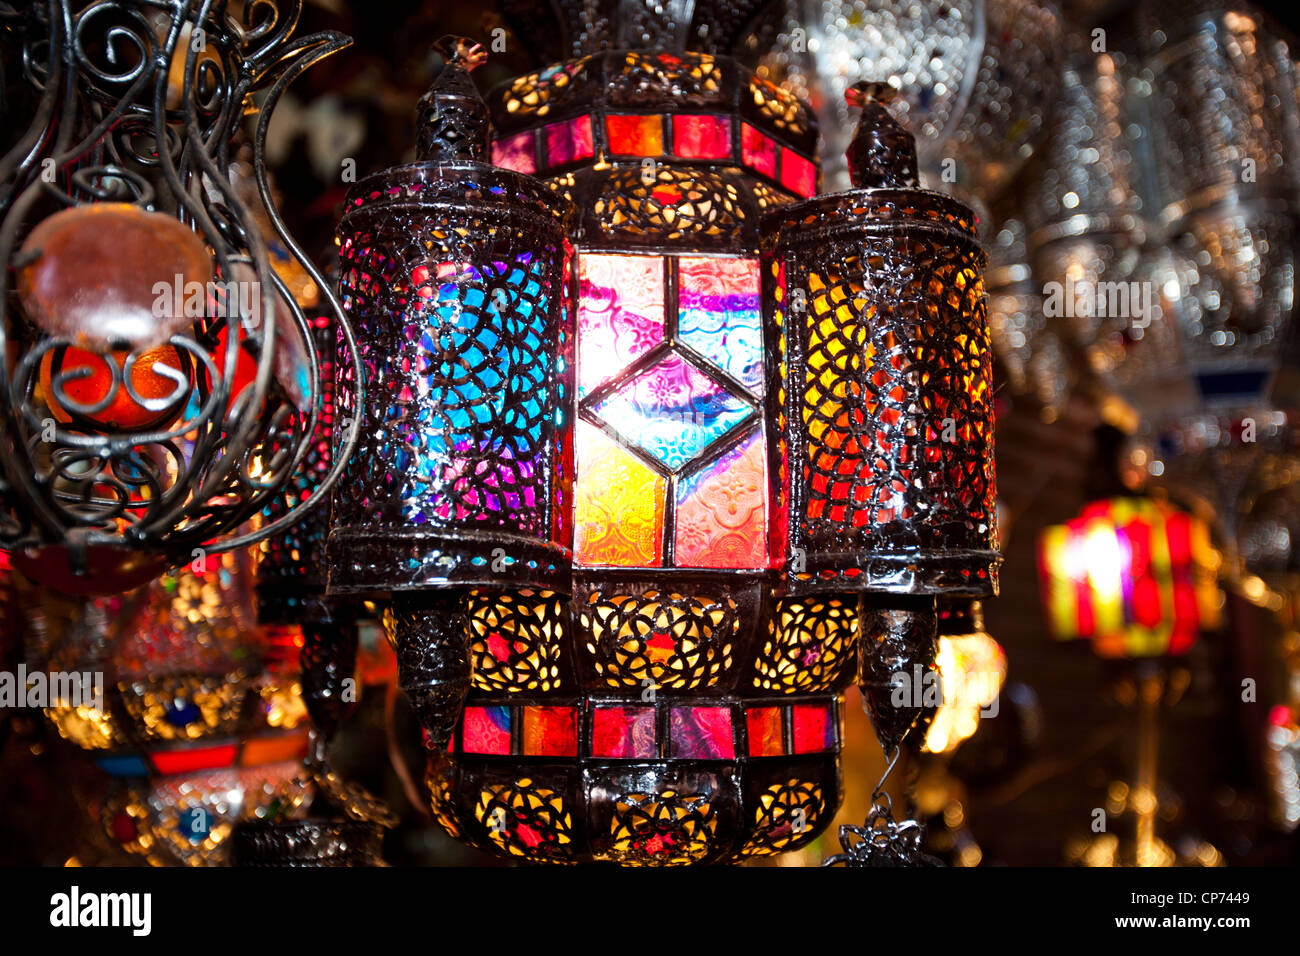 Traditional moroccan lamps in a souk in marrakech morocco stock traditional moroccan lamps in a souk in marrakech morocco stock photo 48100089 alamy arubaitofo Image collections